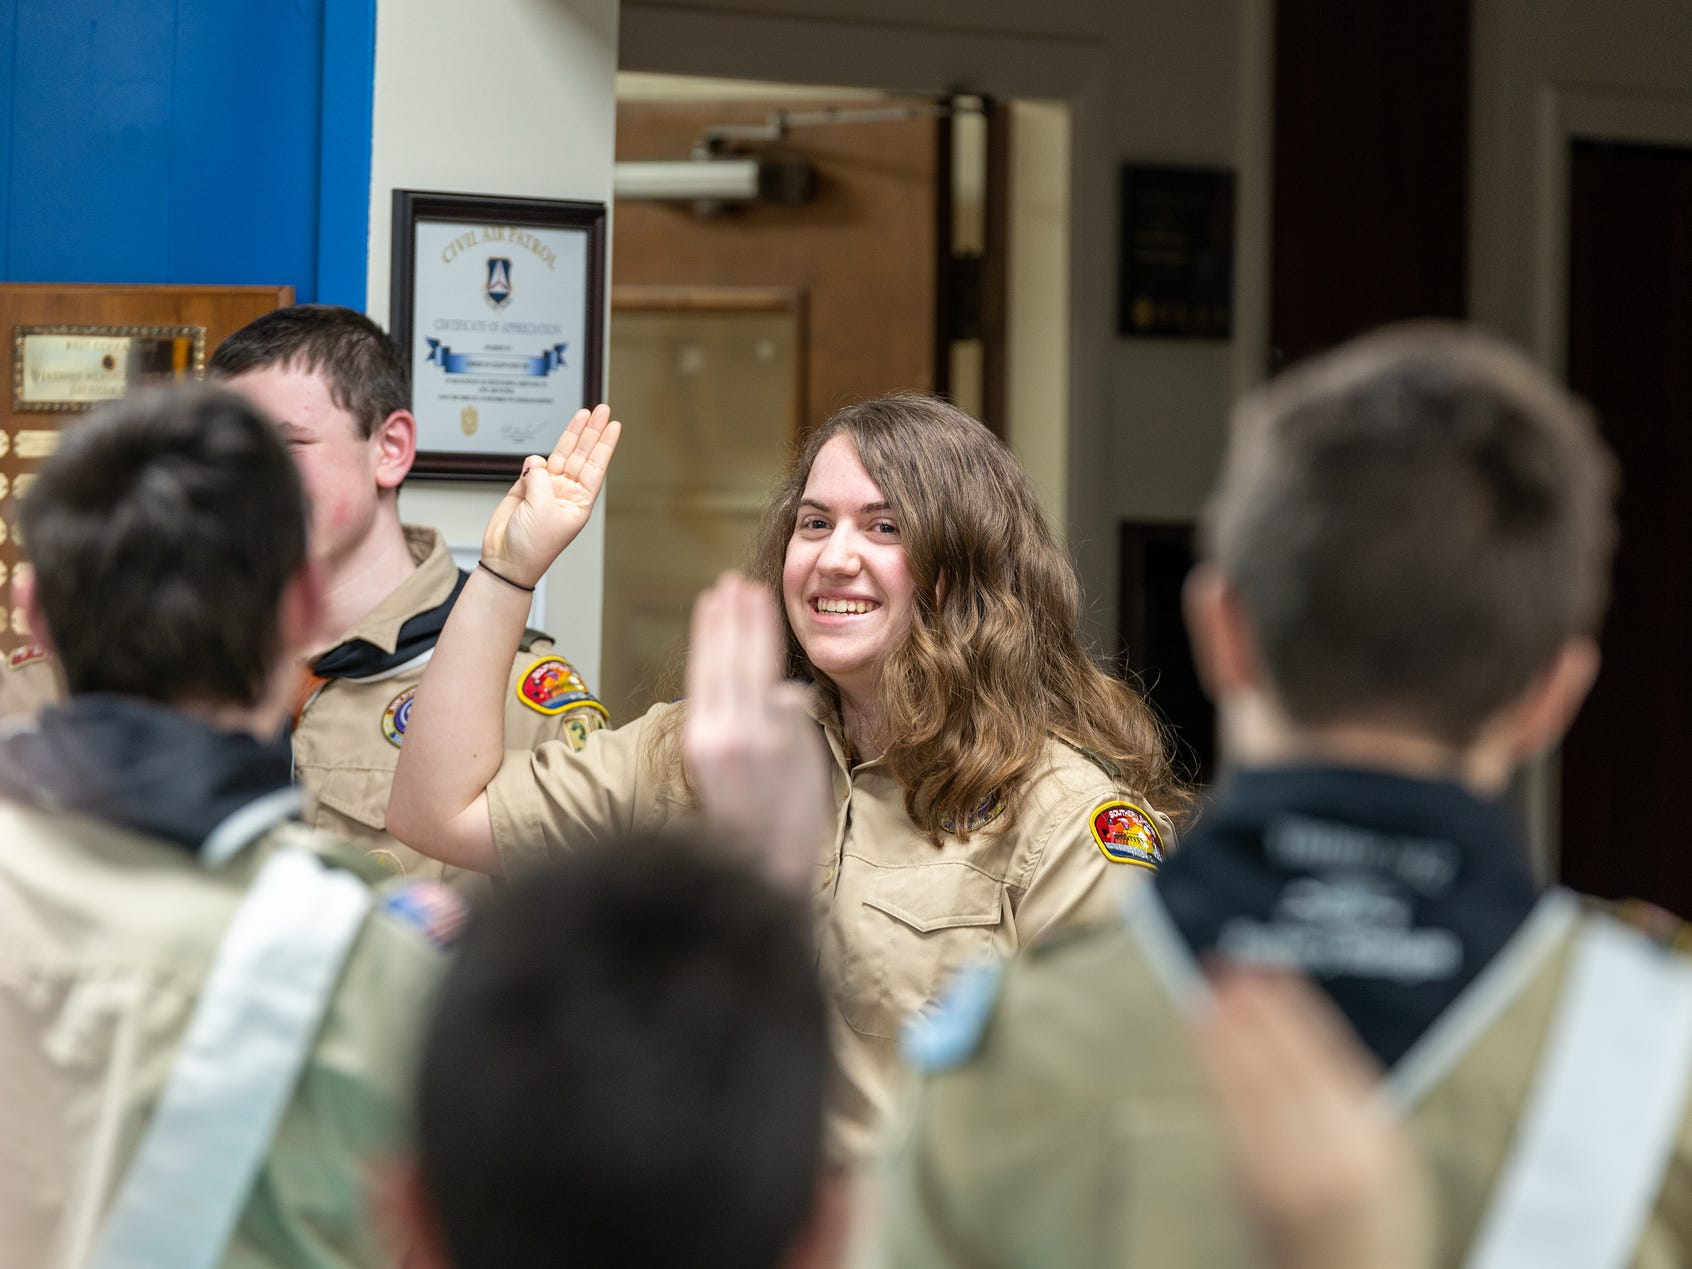 Victoria Conquest, 17, leads the troops in reciting the Scout's Oath Monday, Feb. 18, 2019.